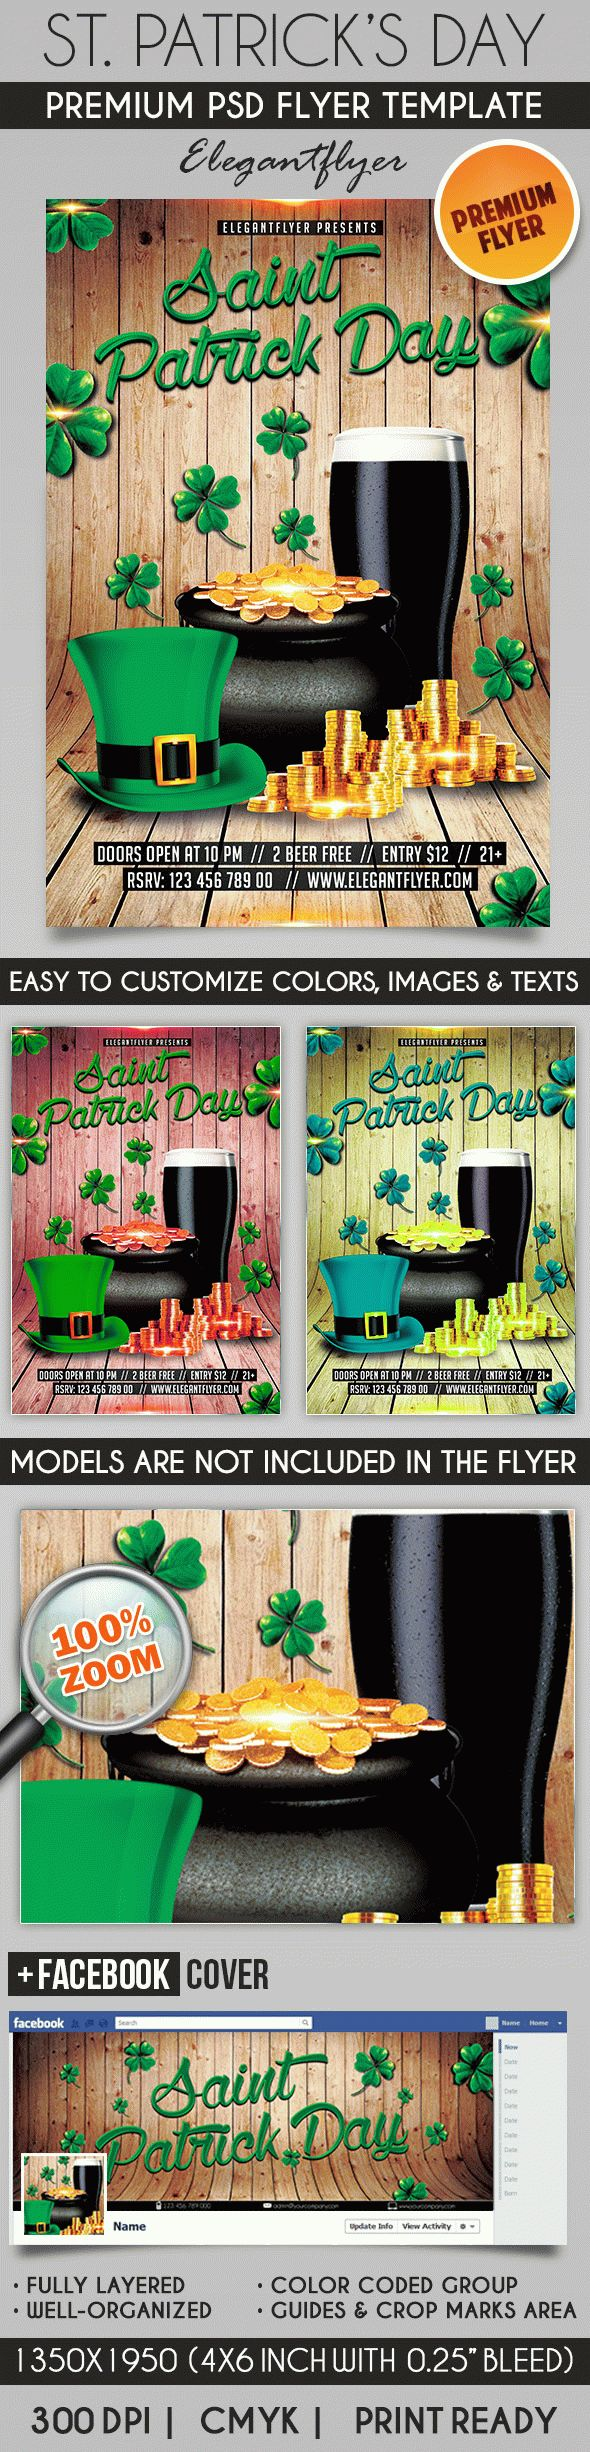 saint patrick day  u2013 flyer psd template  u2013 by elegantflyer